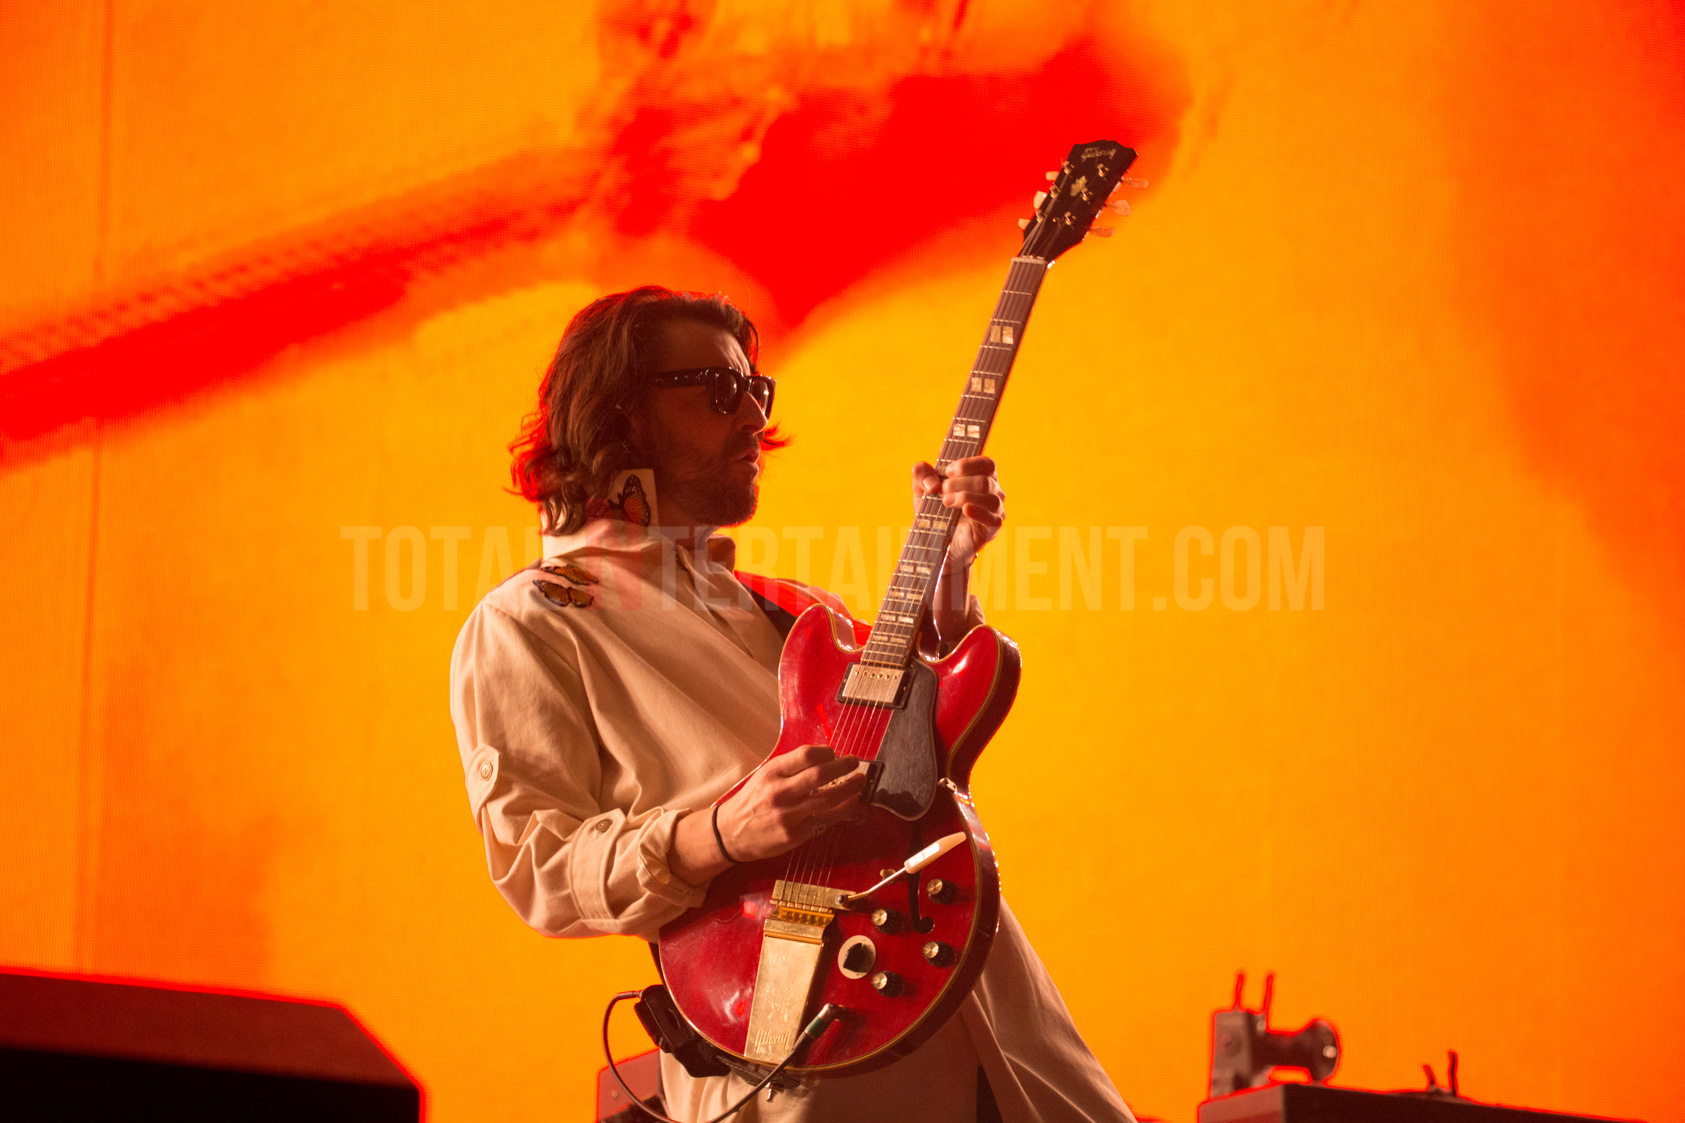 The Courteeners, Music, Live Event, Old Trafford, Manchester, TotalNtertainment, Christopher James Ryan